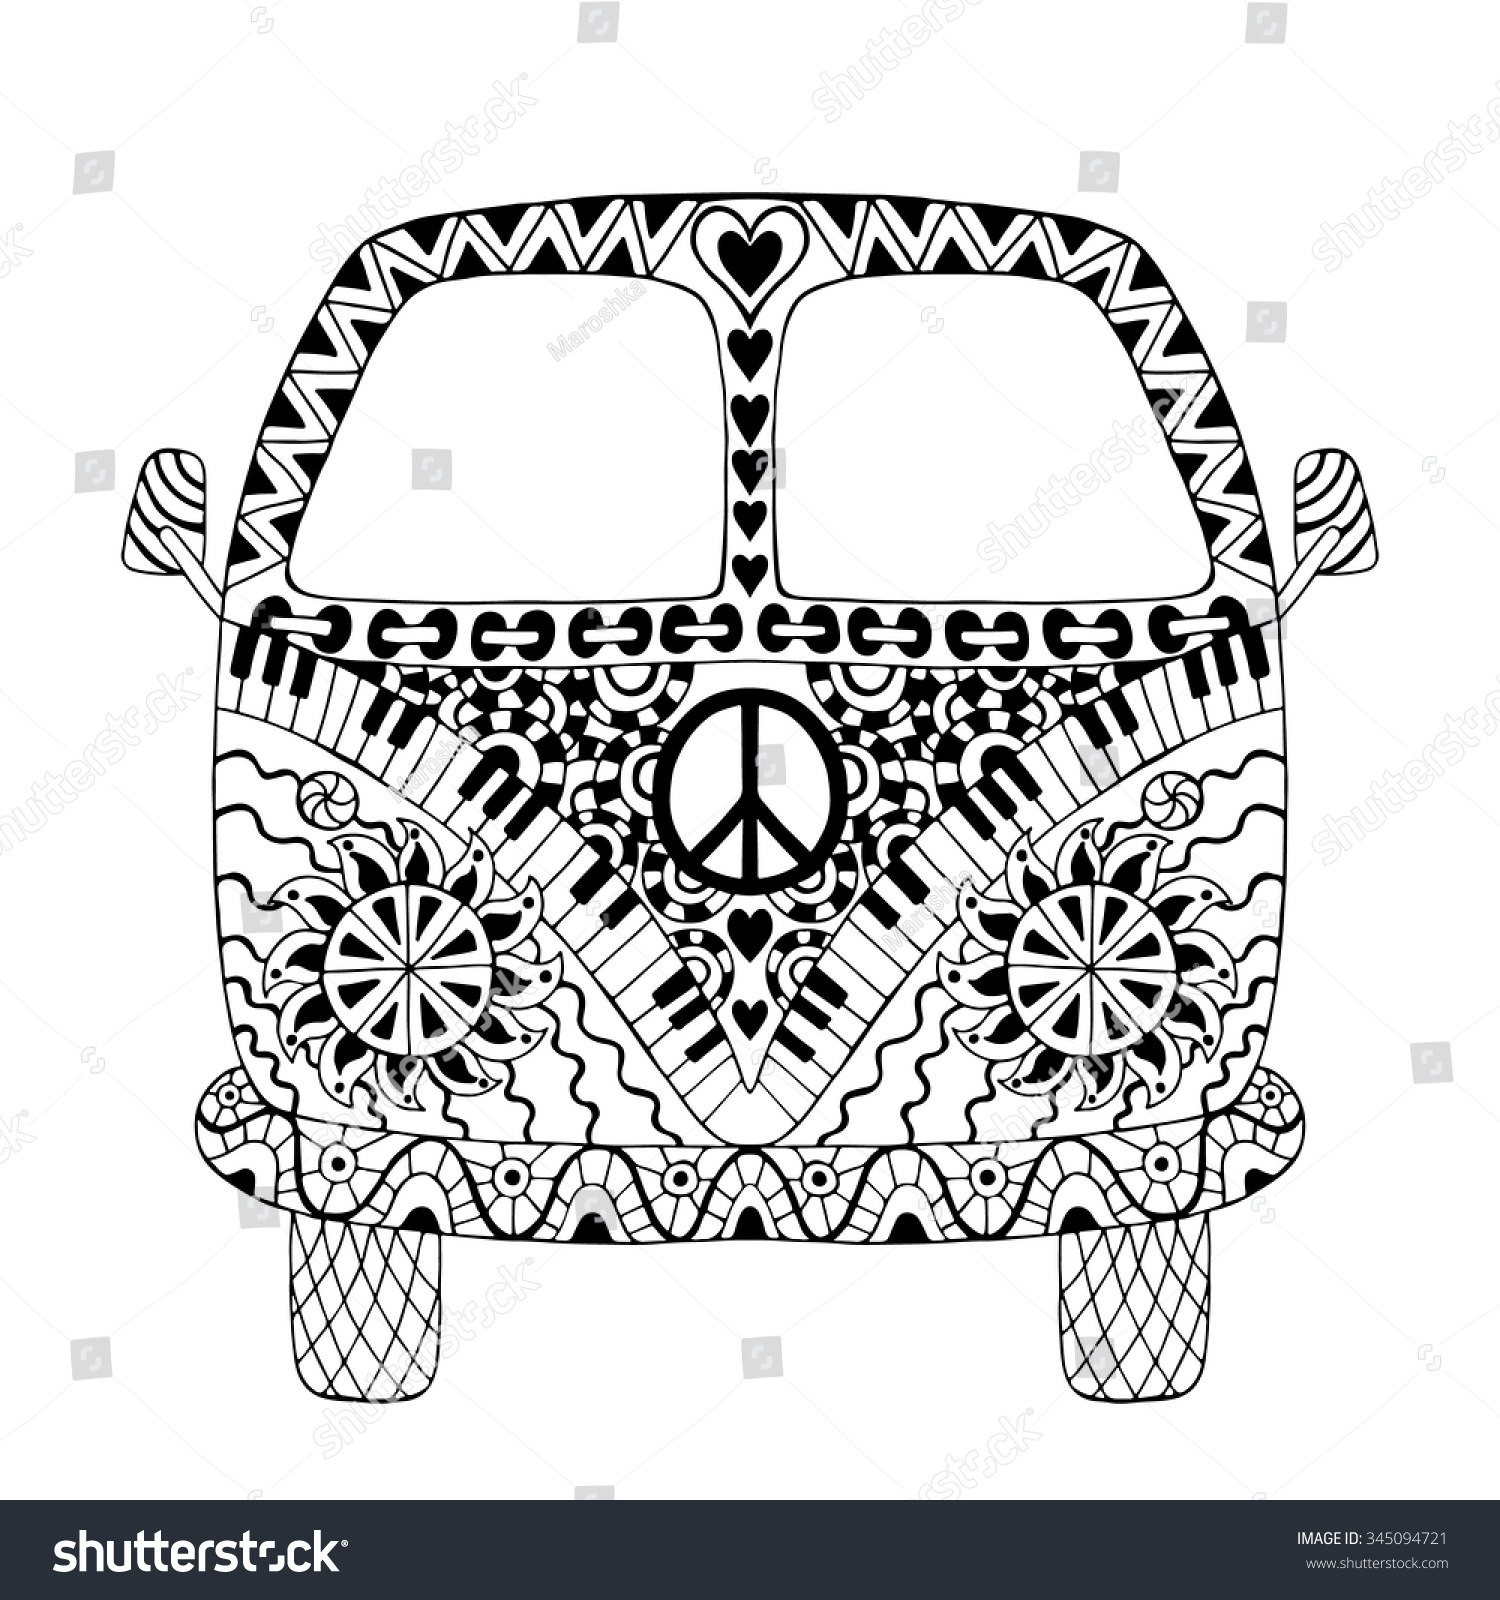 Hippie Vintage Car Mini Van Zentangle Stock Vector